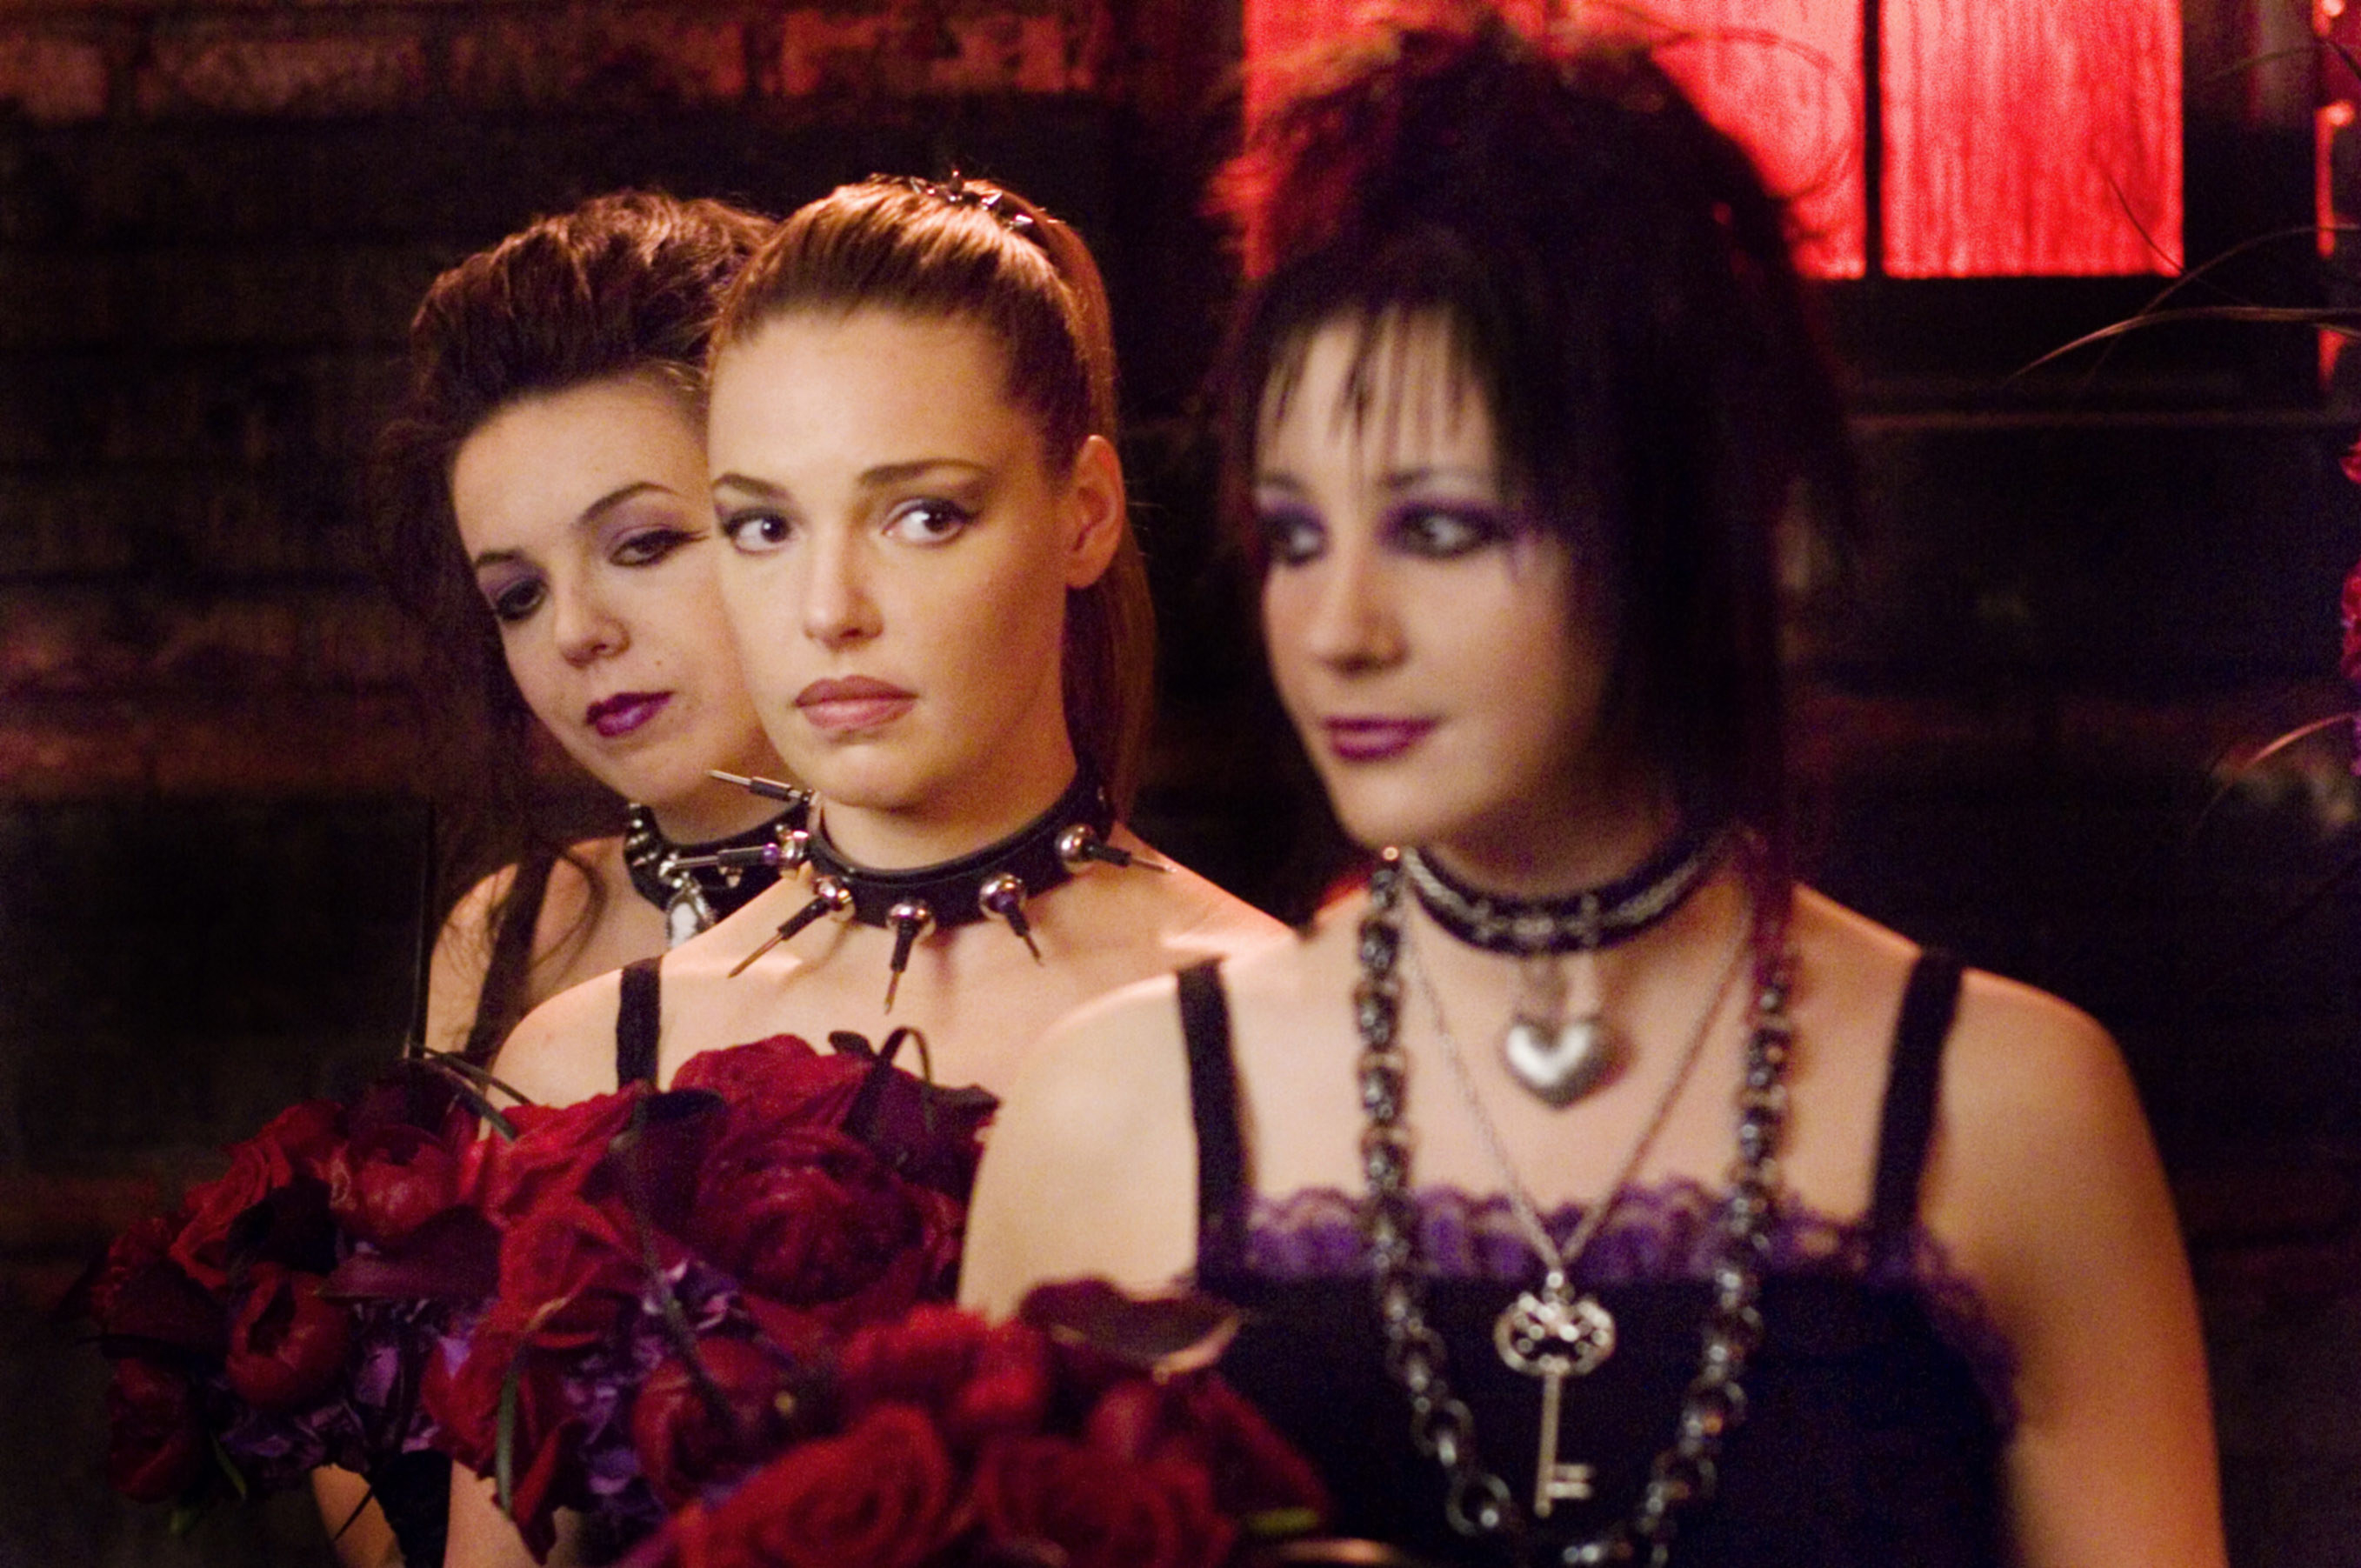 Jane stands between two women wearing a spiky choker and holding flowers